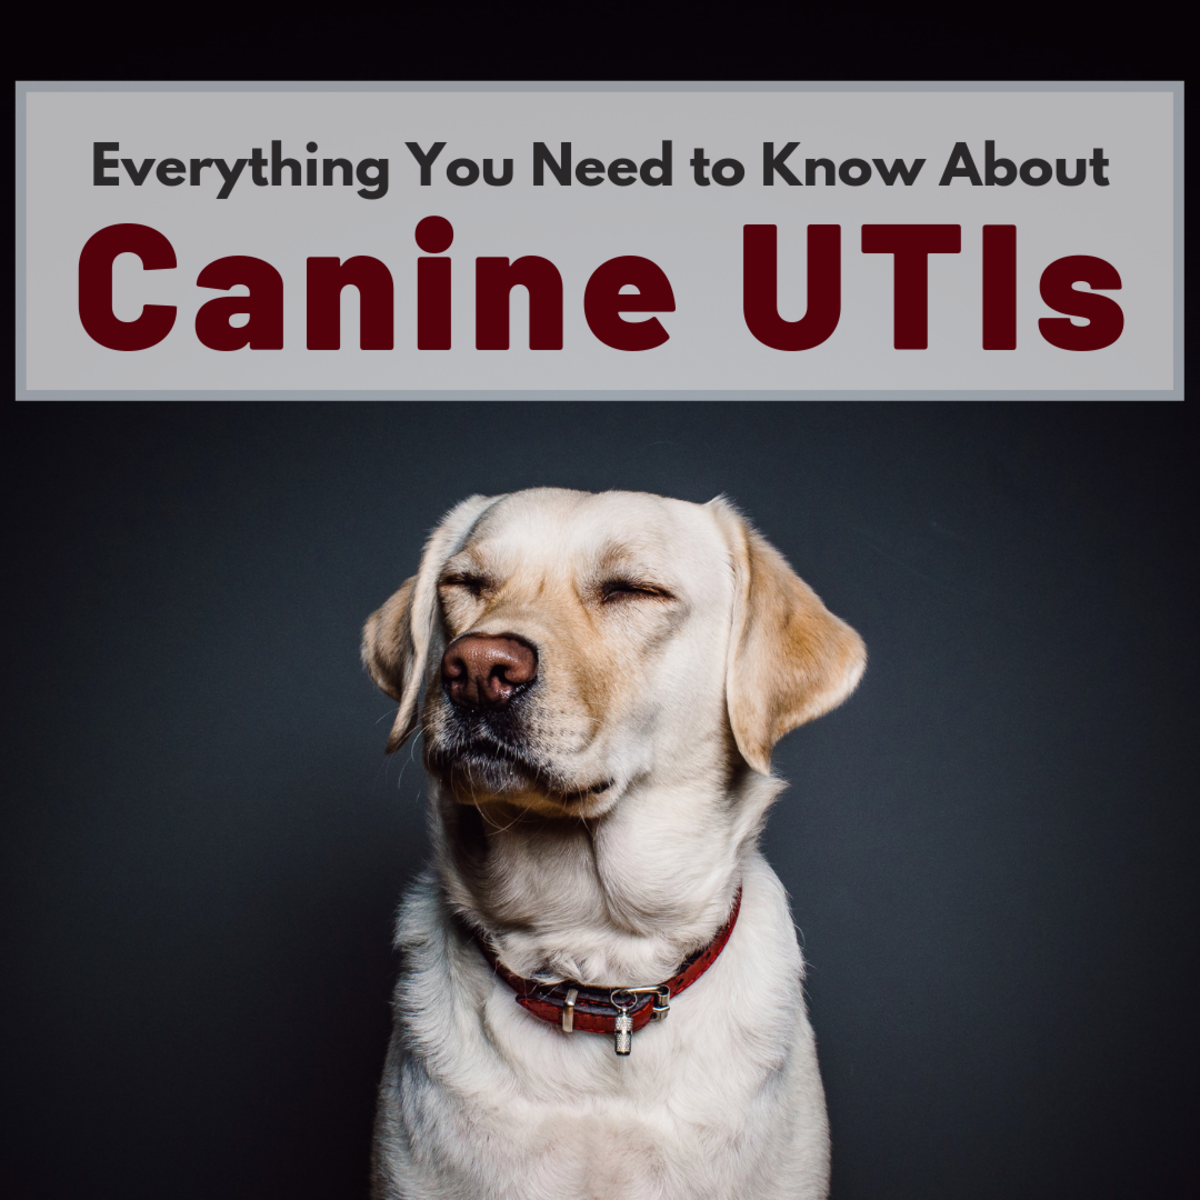 UTIs are just as painful and unpleasant for dogs as they are for humans. Learn how to recognize UTI symptoms and prevent infection in the first place.